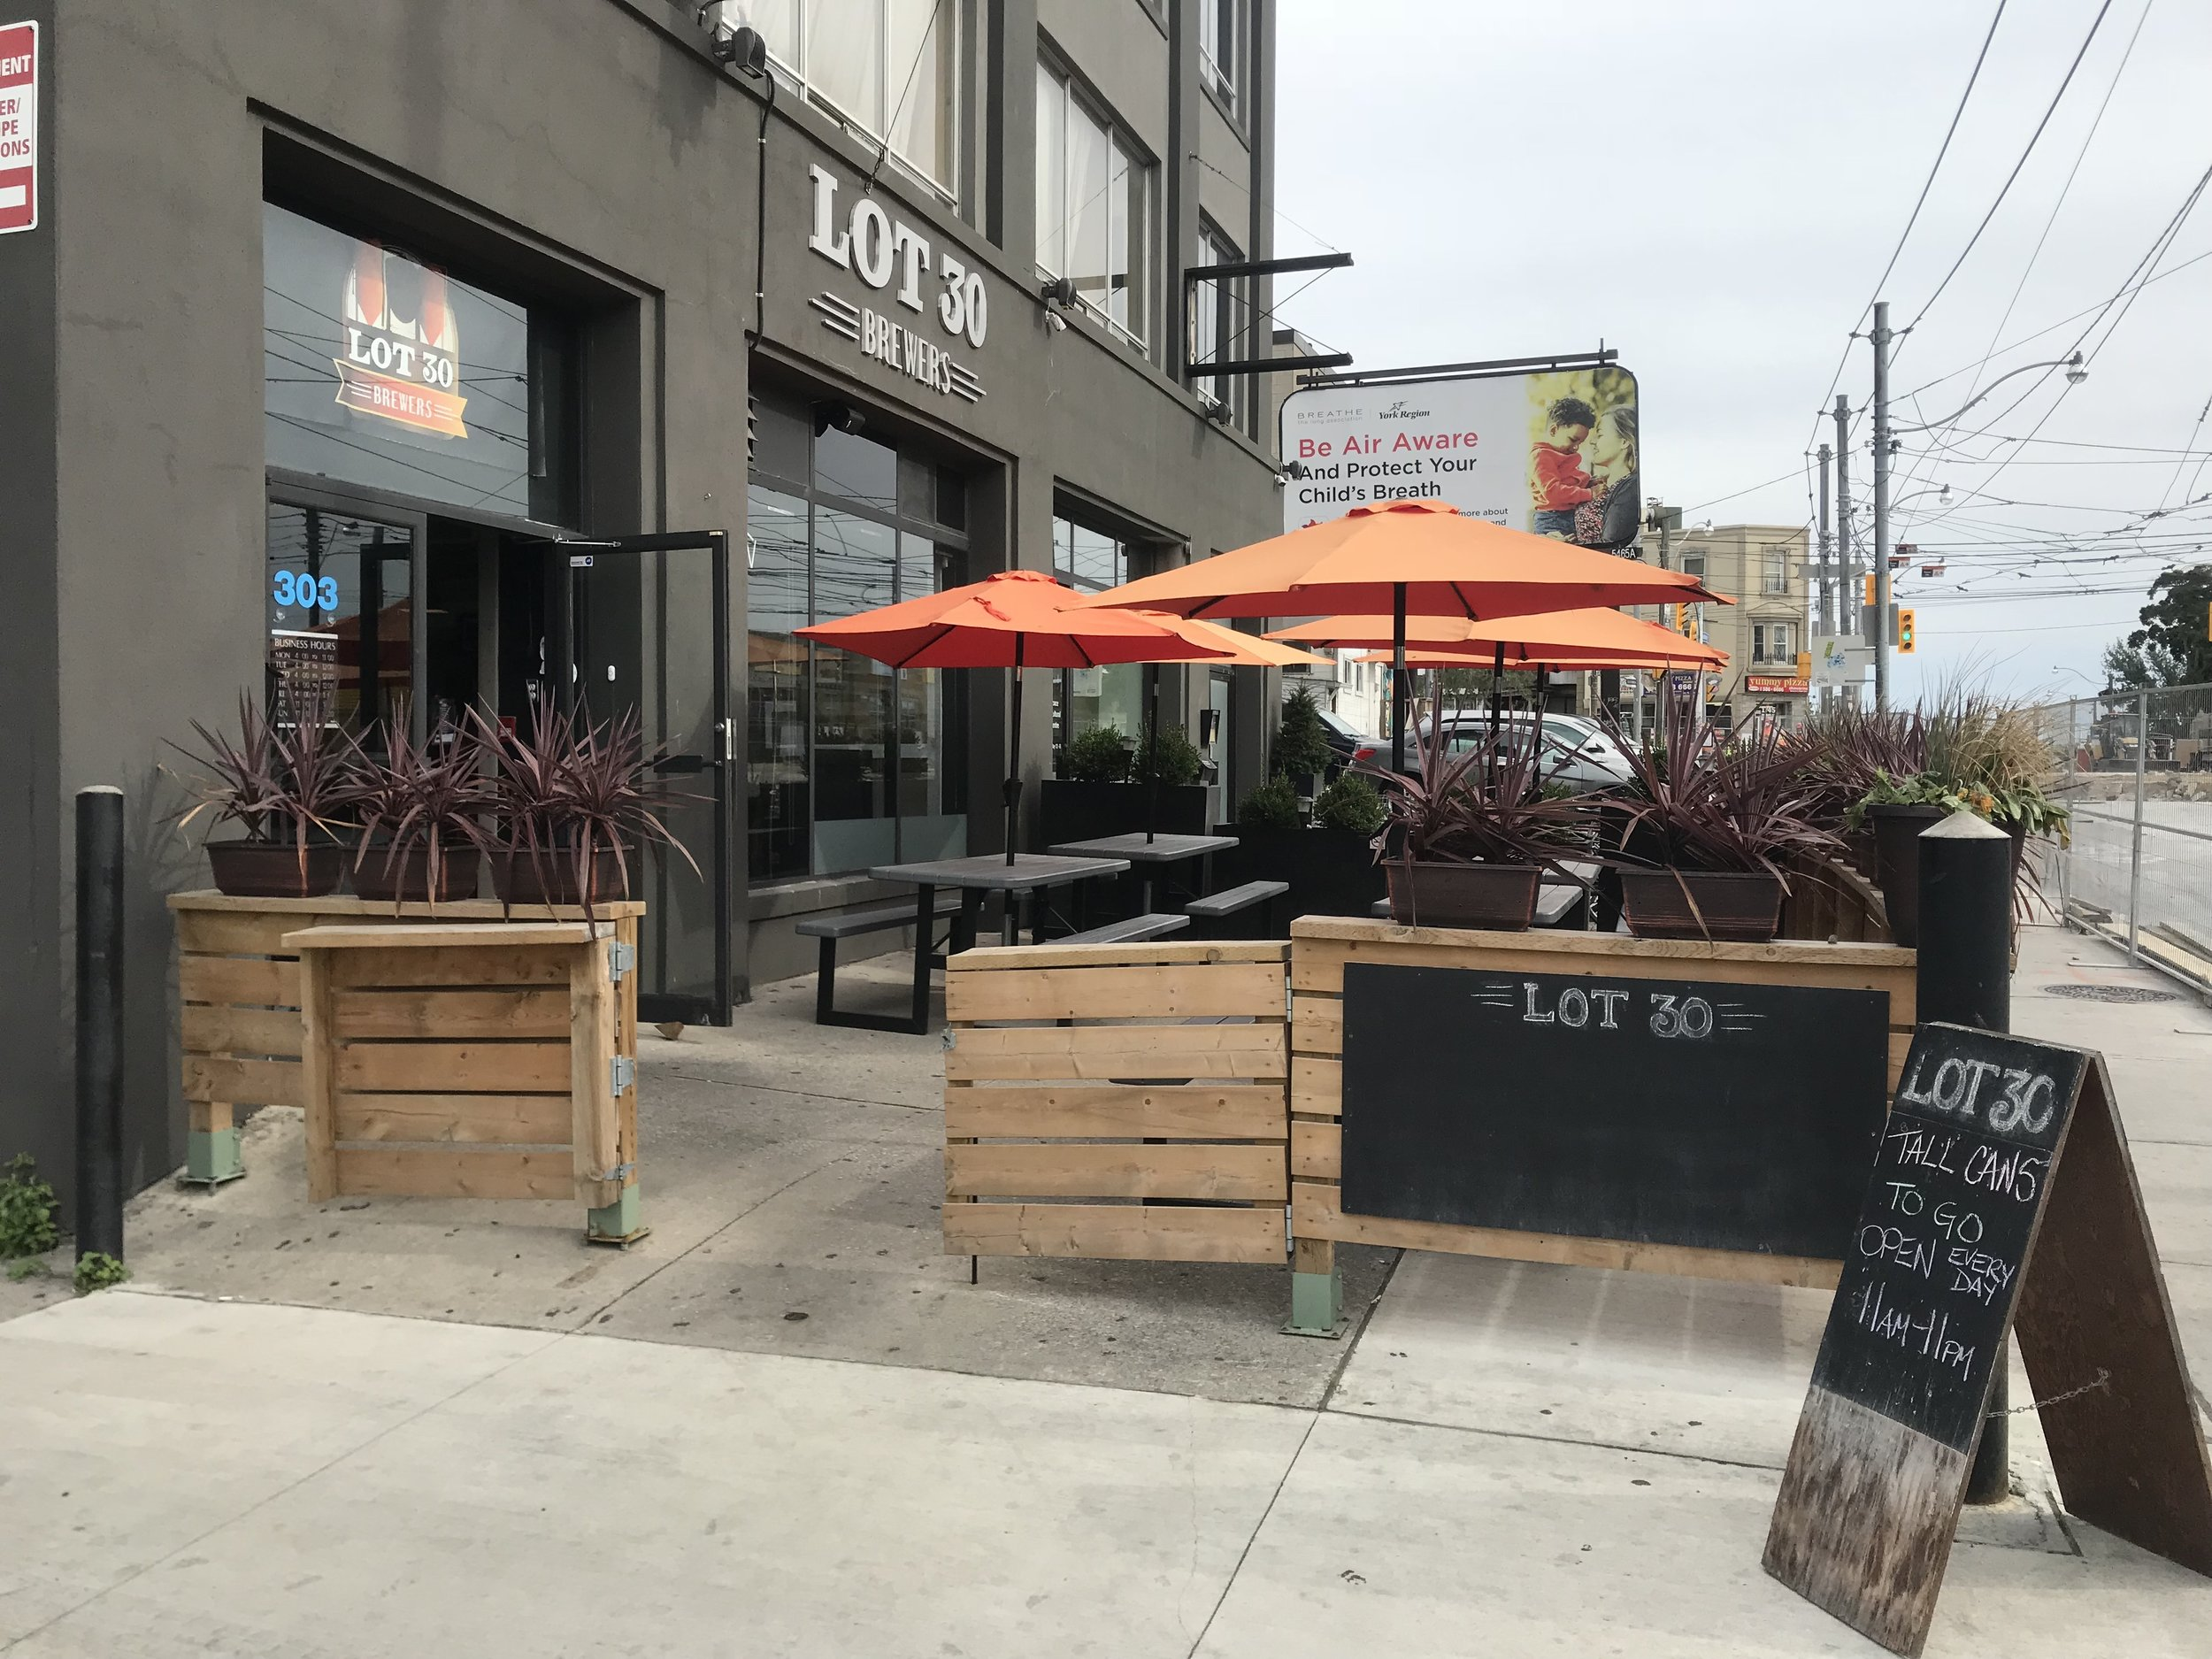 Picture of the patio and entrance to the Lot 30 Brewers